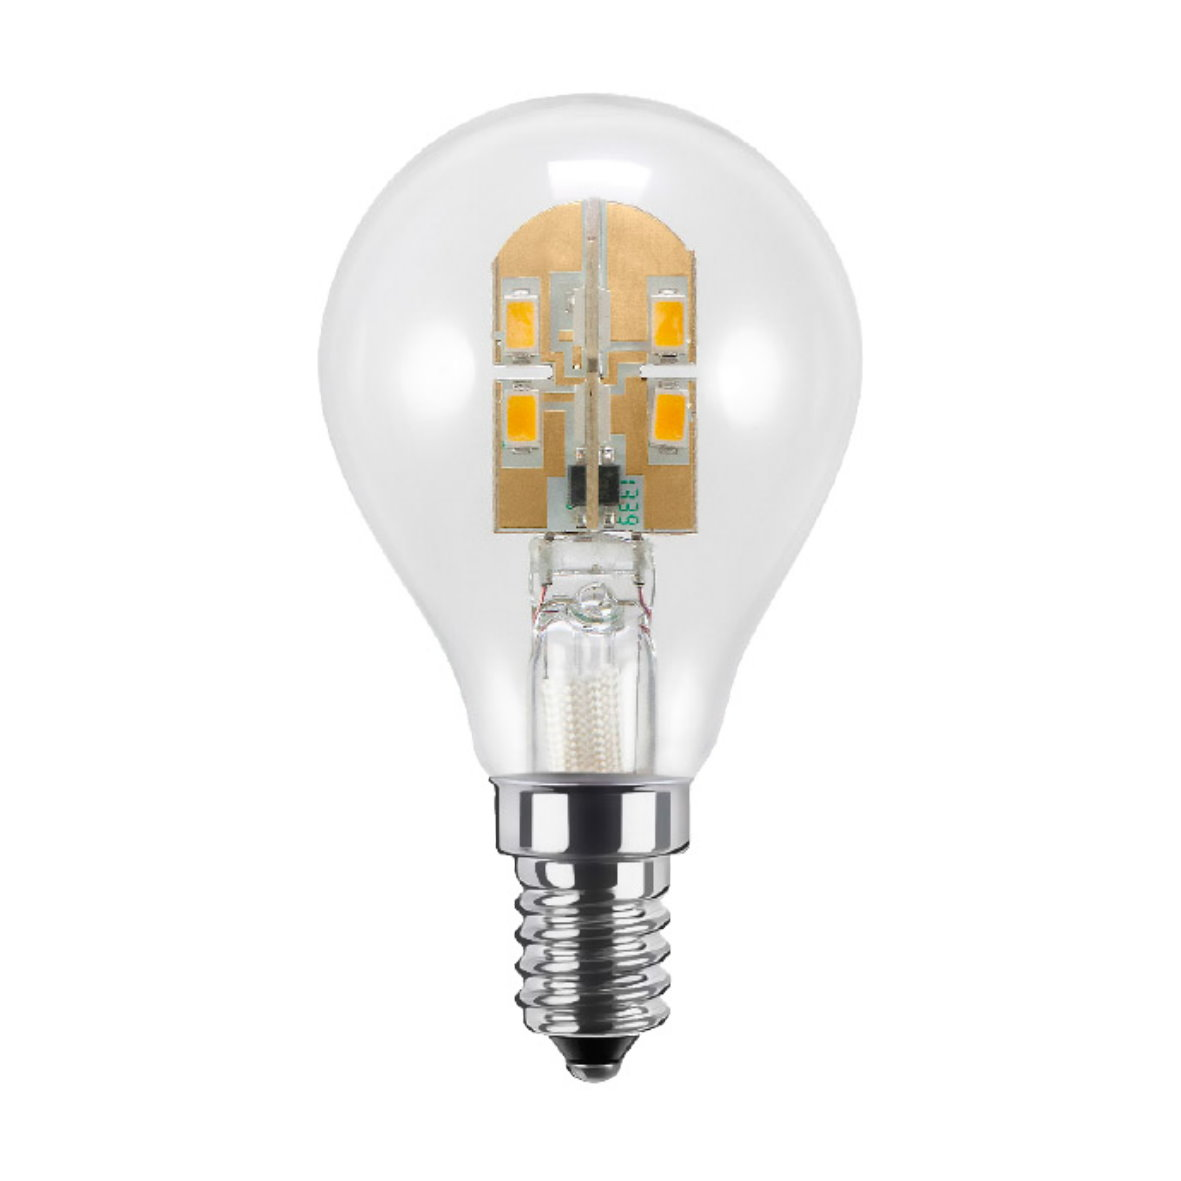 segula smd led birne rund e14 e27 leuchtmittel dimmable dimmbar lampe bulb 230v ebay. Black Bedroom Furniture Sets. Home Design Ideas